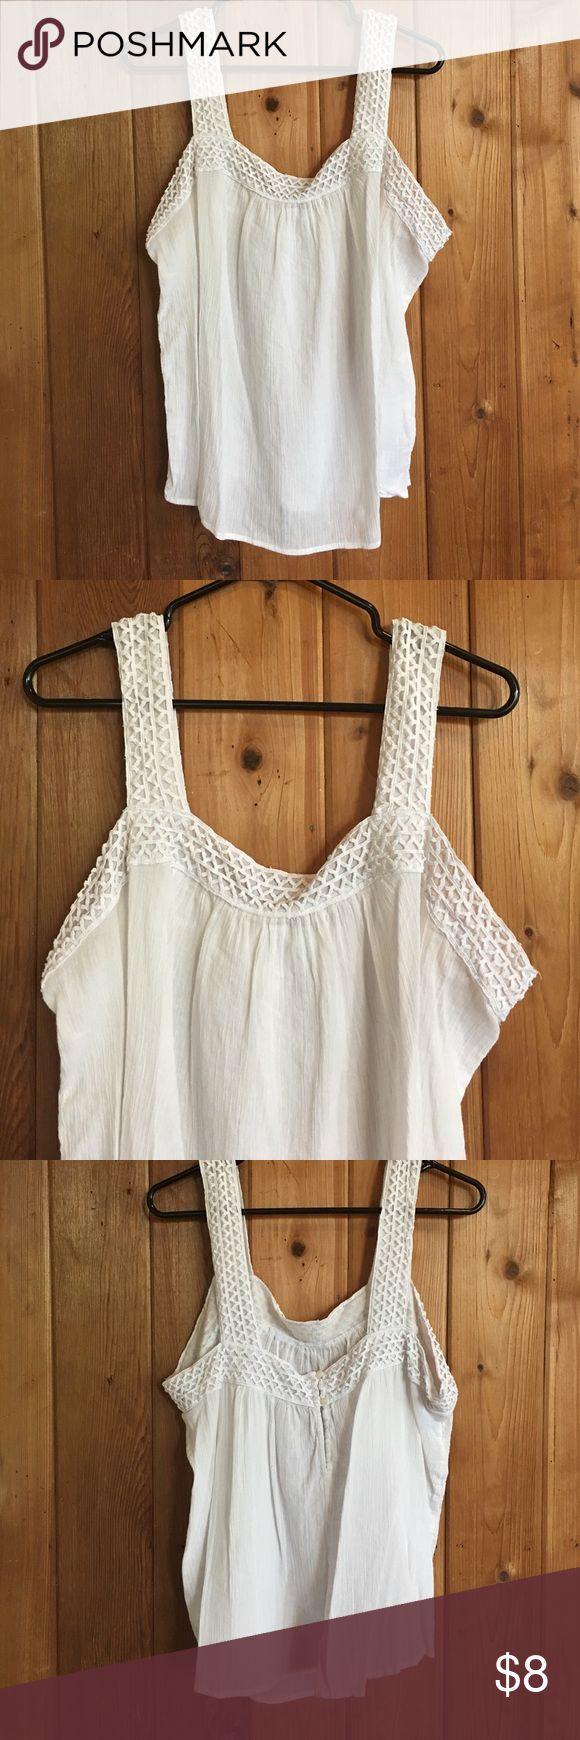 OLD NAVY Cami Blouse Crochet design around Top and straps. Cute button design in the back. No stains or tears. Old Navy Tops Camisoles